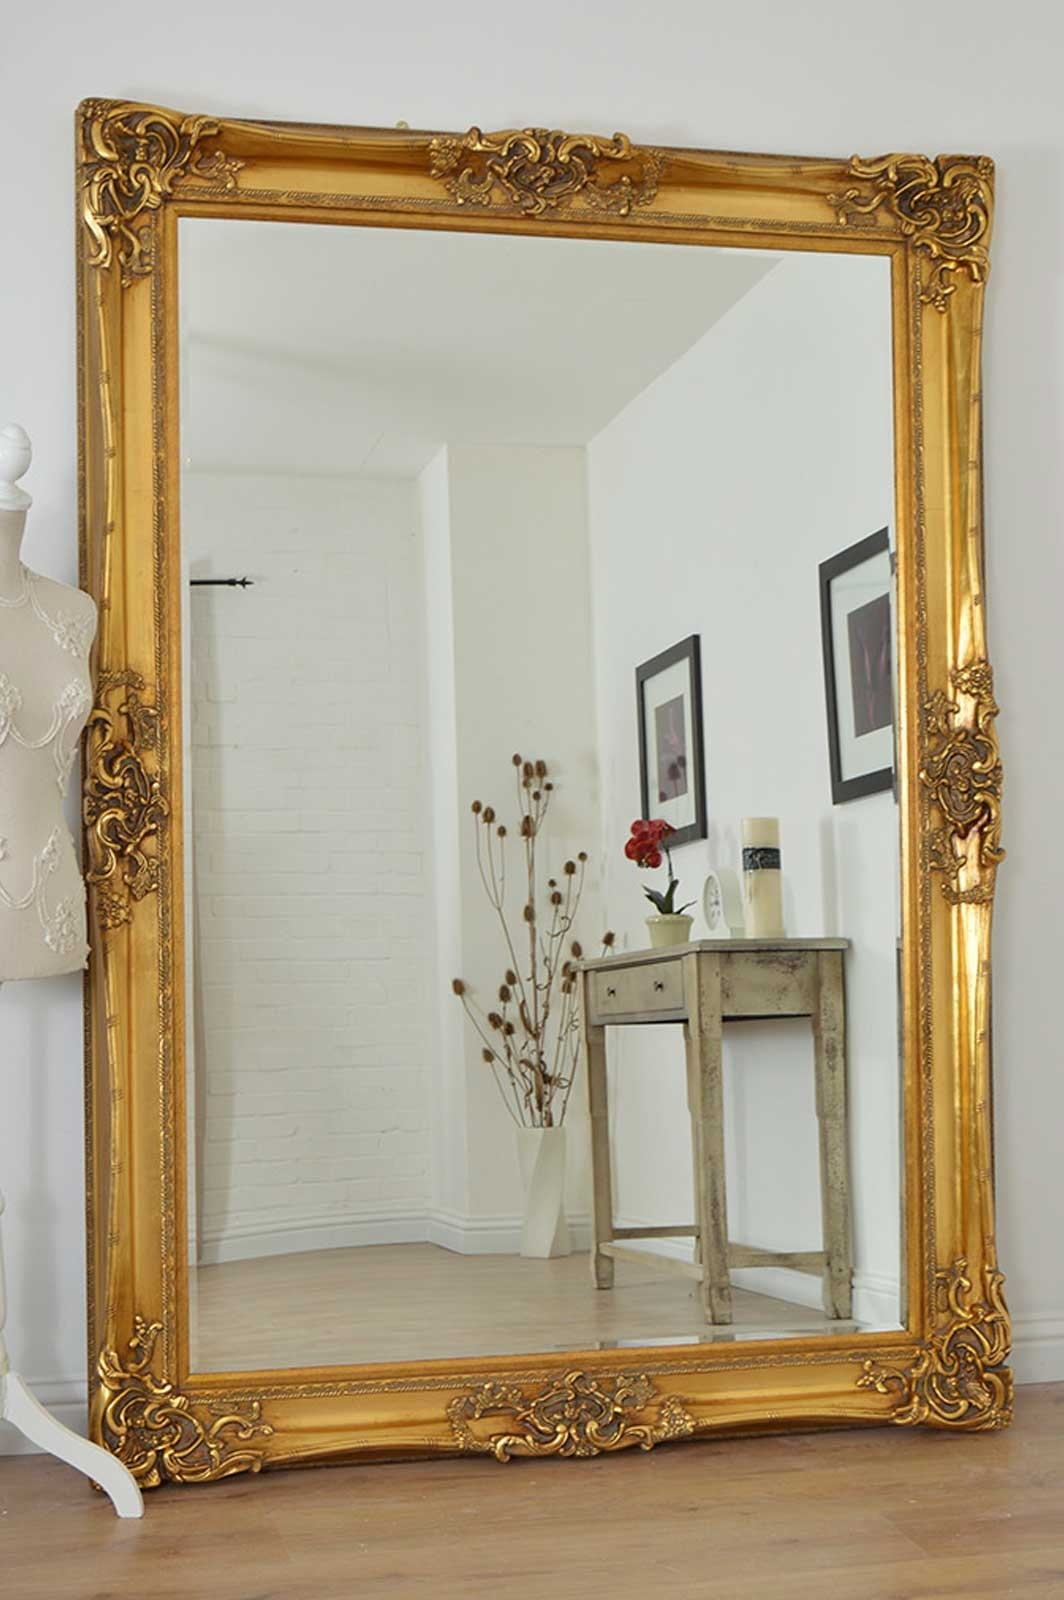 Large Gold Very Ornate Antique Design Wall Mirror 7ft X 5ft 213cm With Regard To Tall Ornate Mirror (Image 7 of 15)